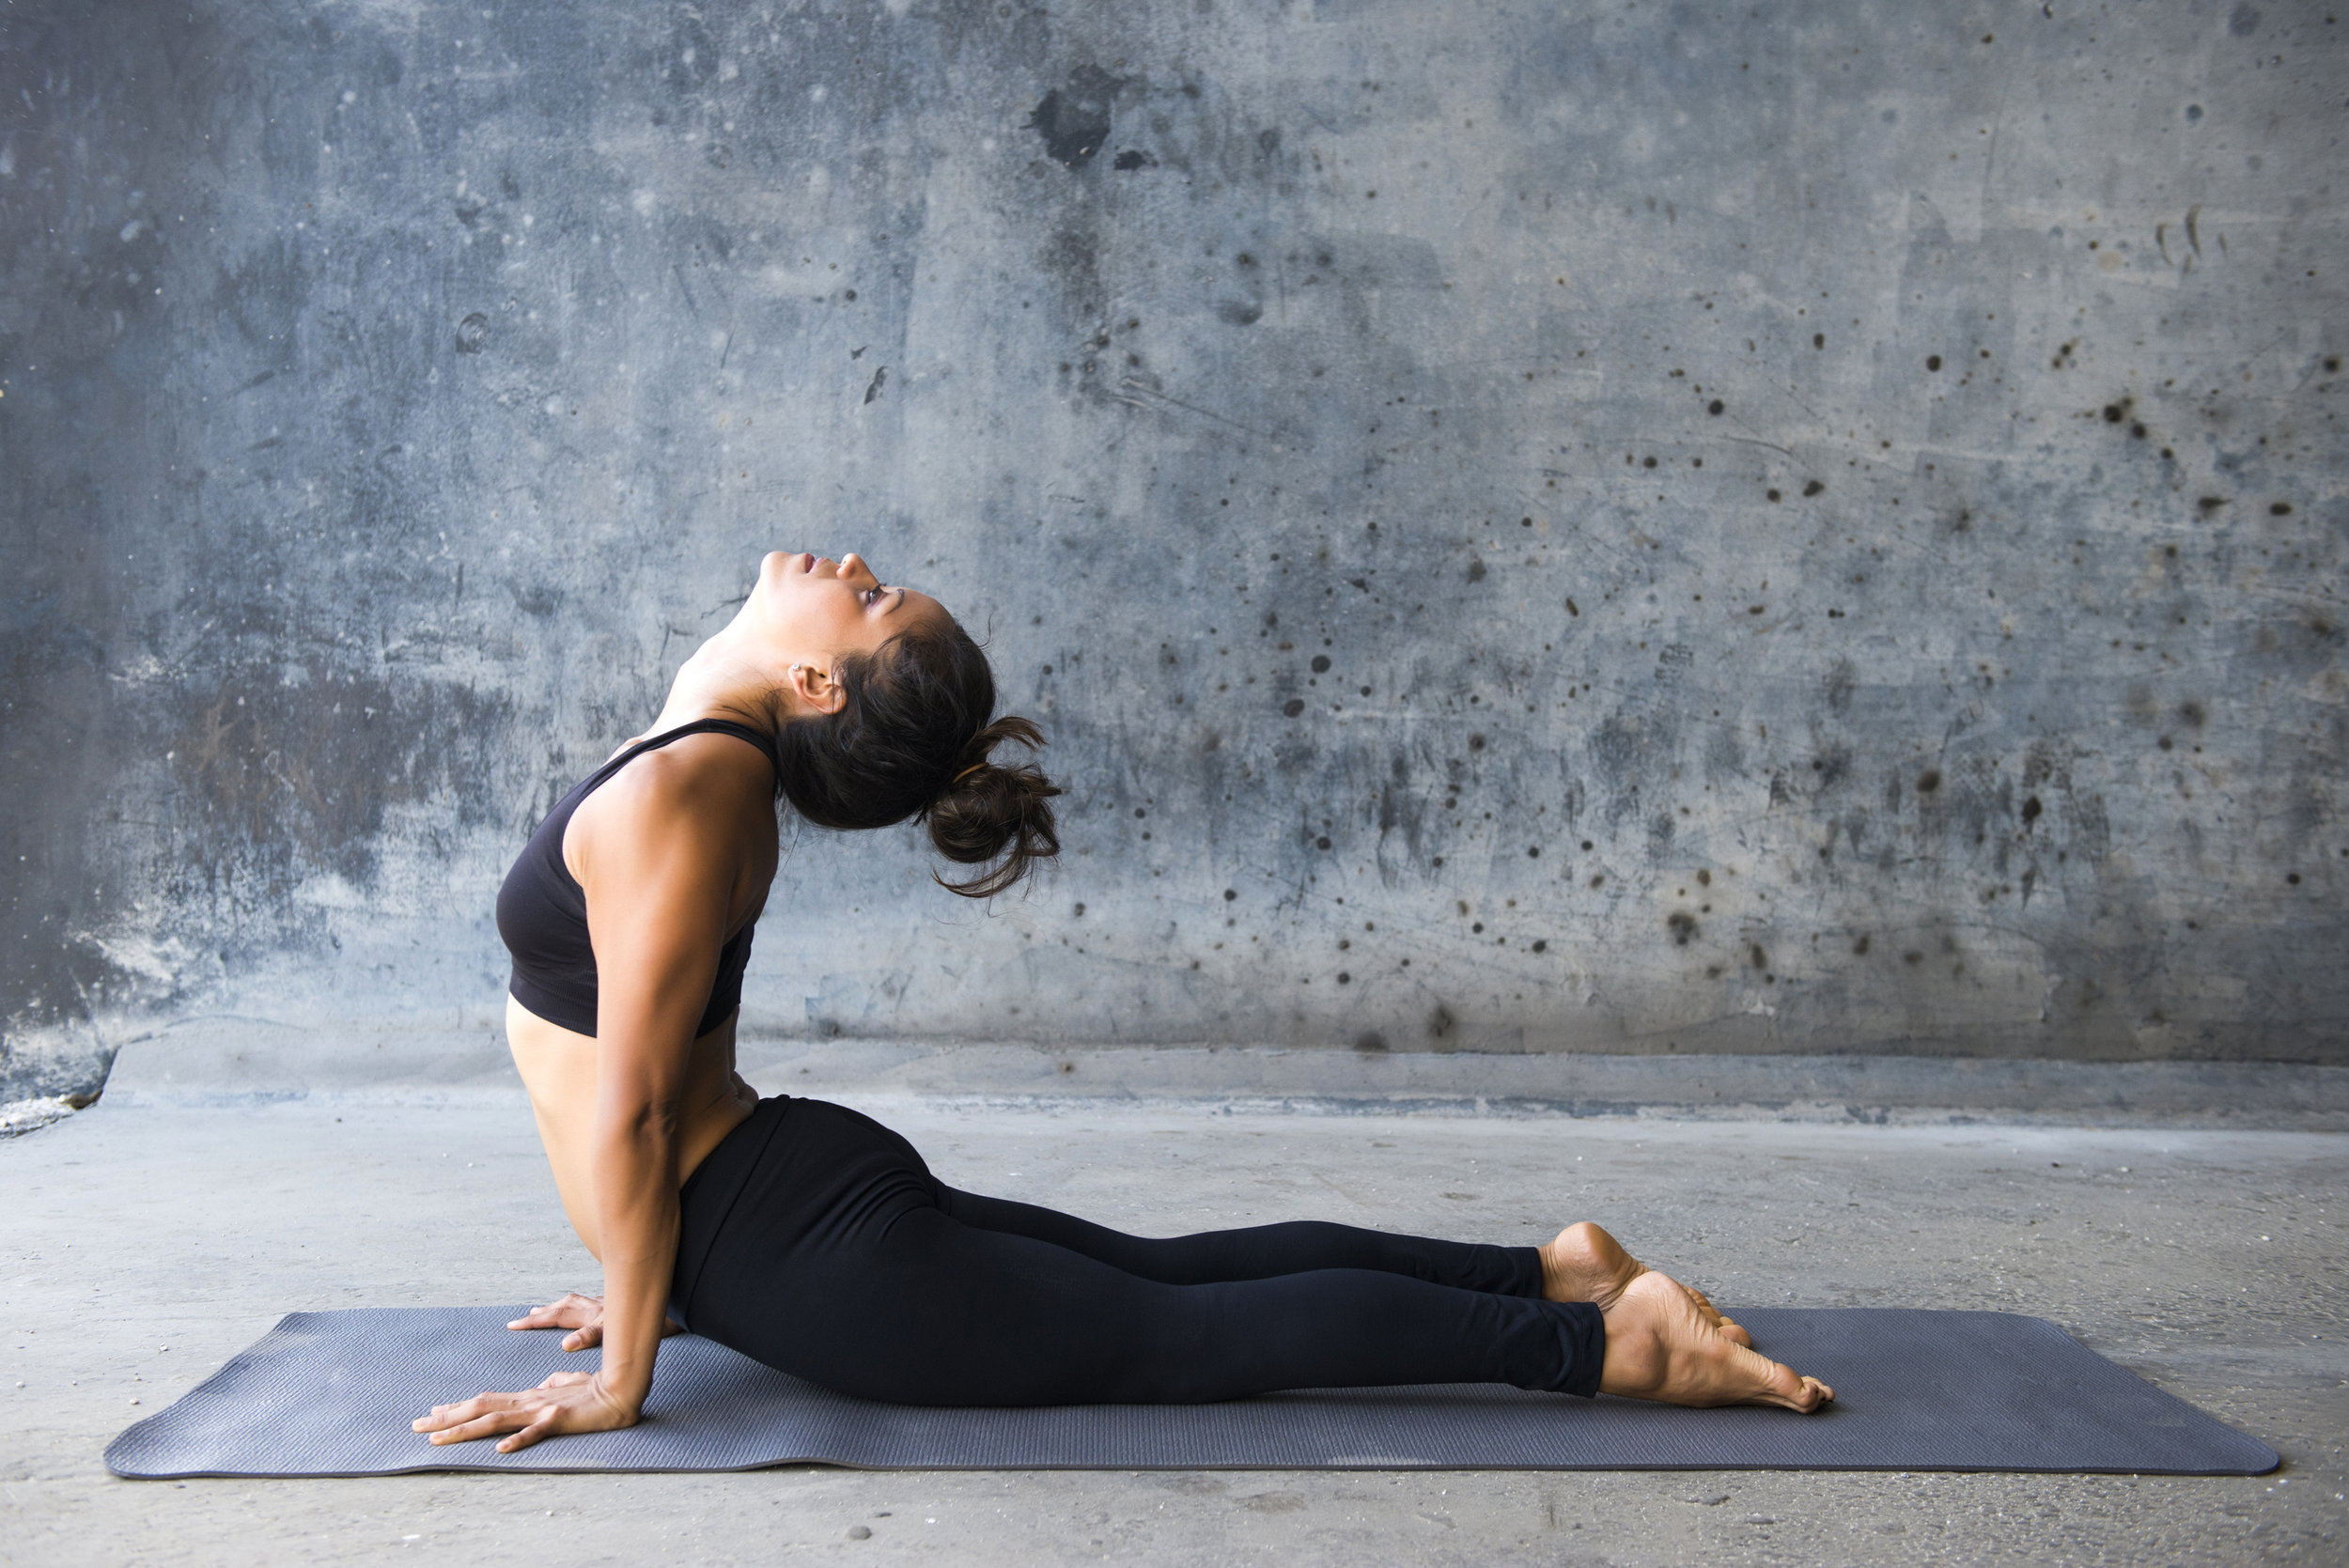 Dorsal wrist impingement syndrome can cause pain in the wrist while doing yoga, particularly upward facing dog position (  Urdhva Mukha Svanasana).  .